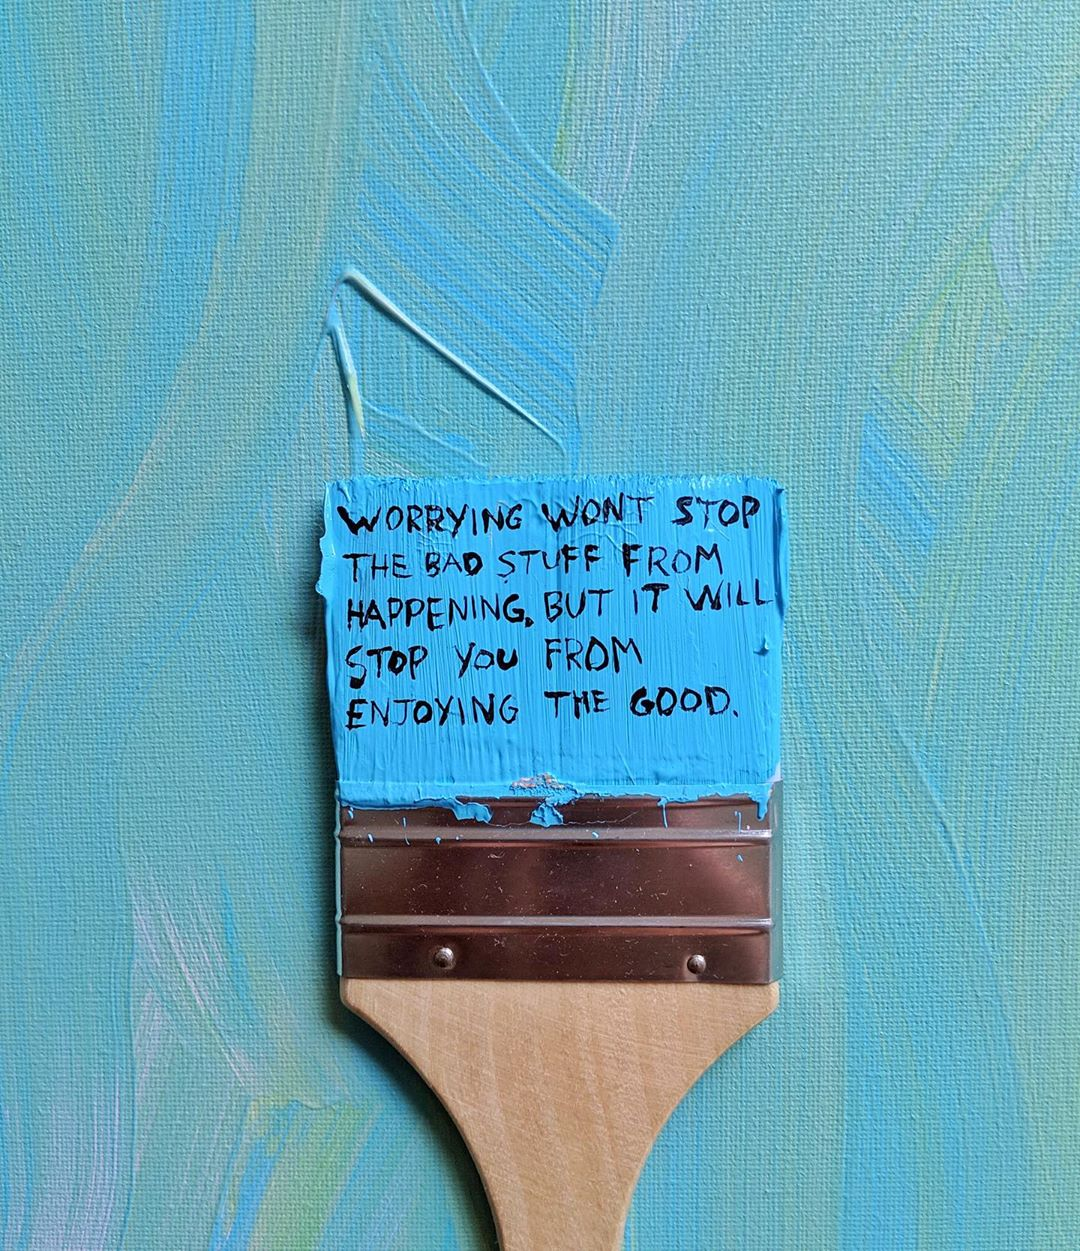 Empowering words by Lucy Litman